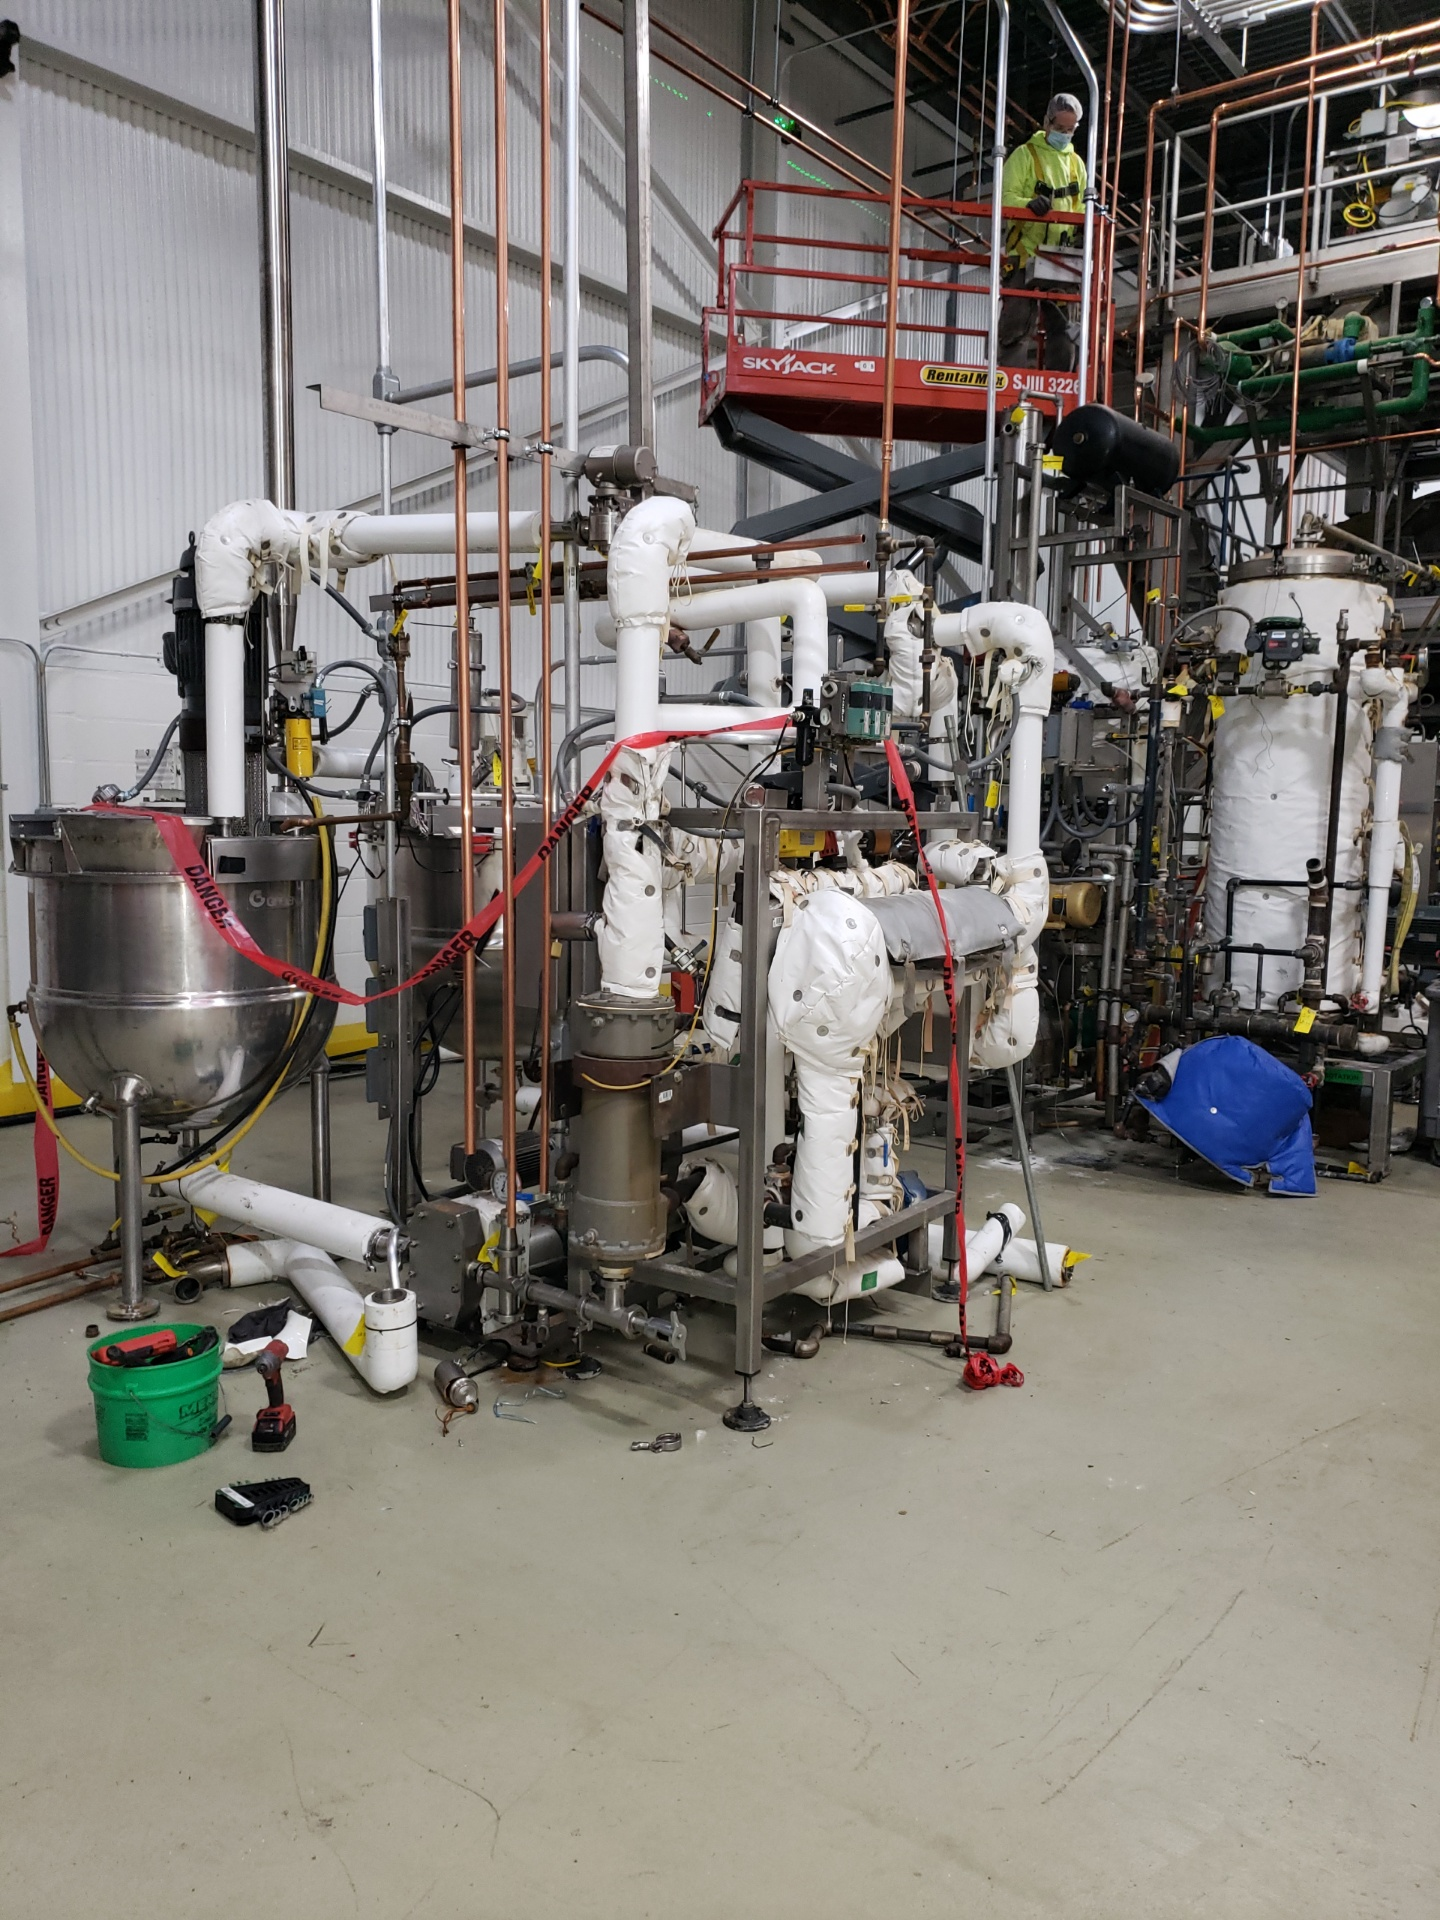 Walsh Services Inc. helping Chicago company with Commercial Plumbing